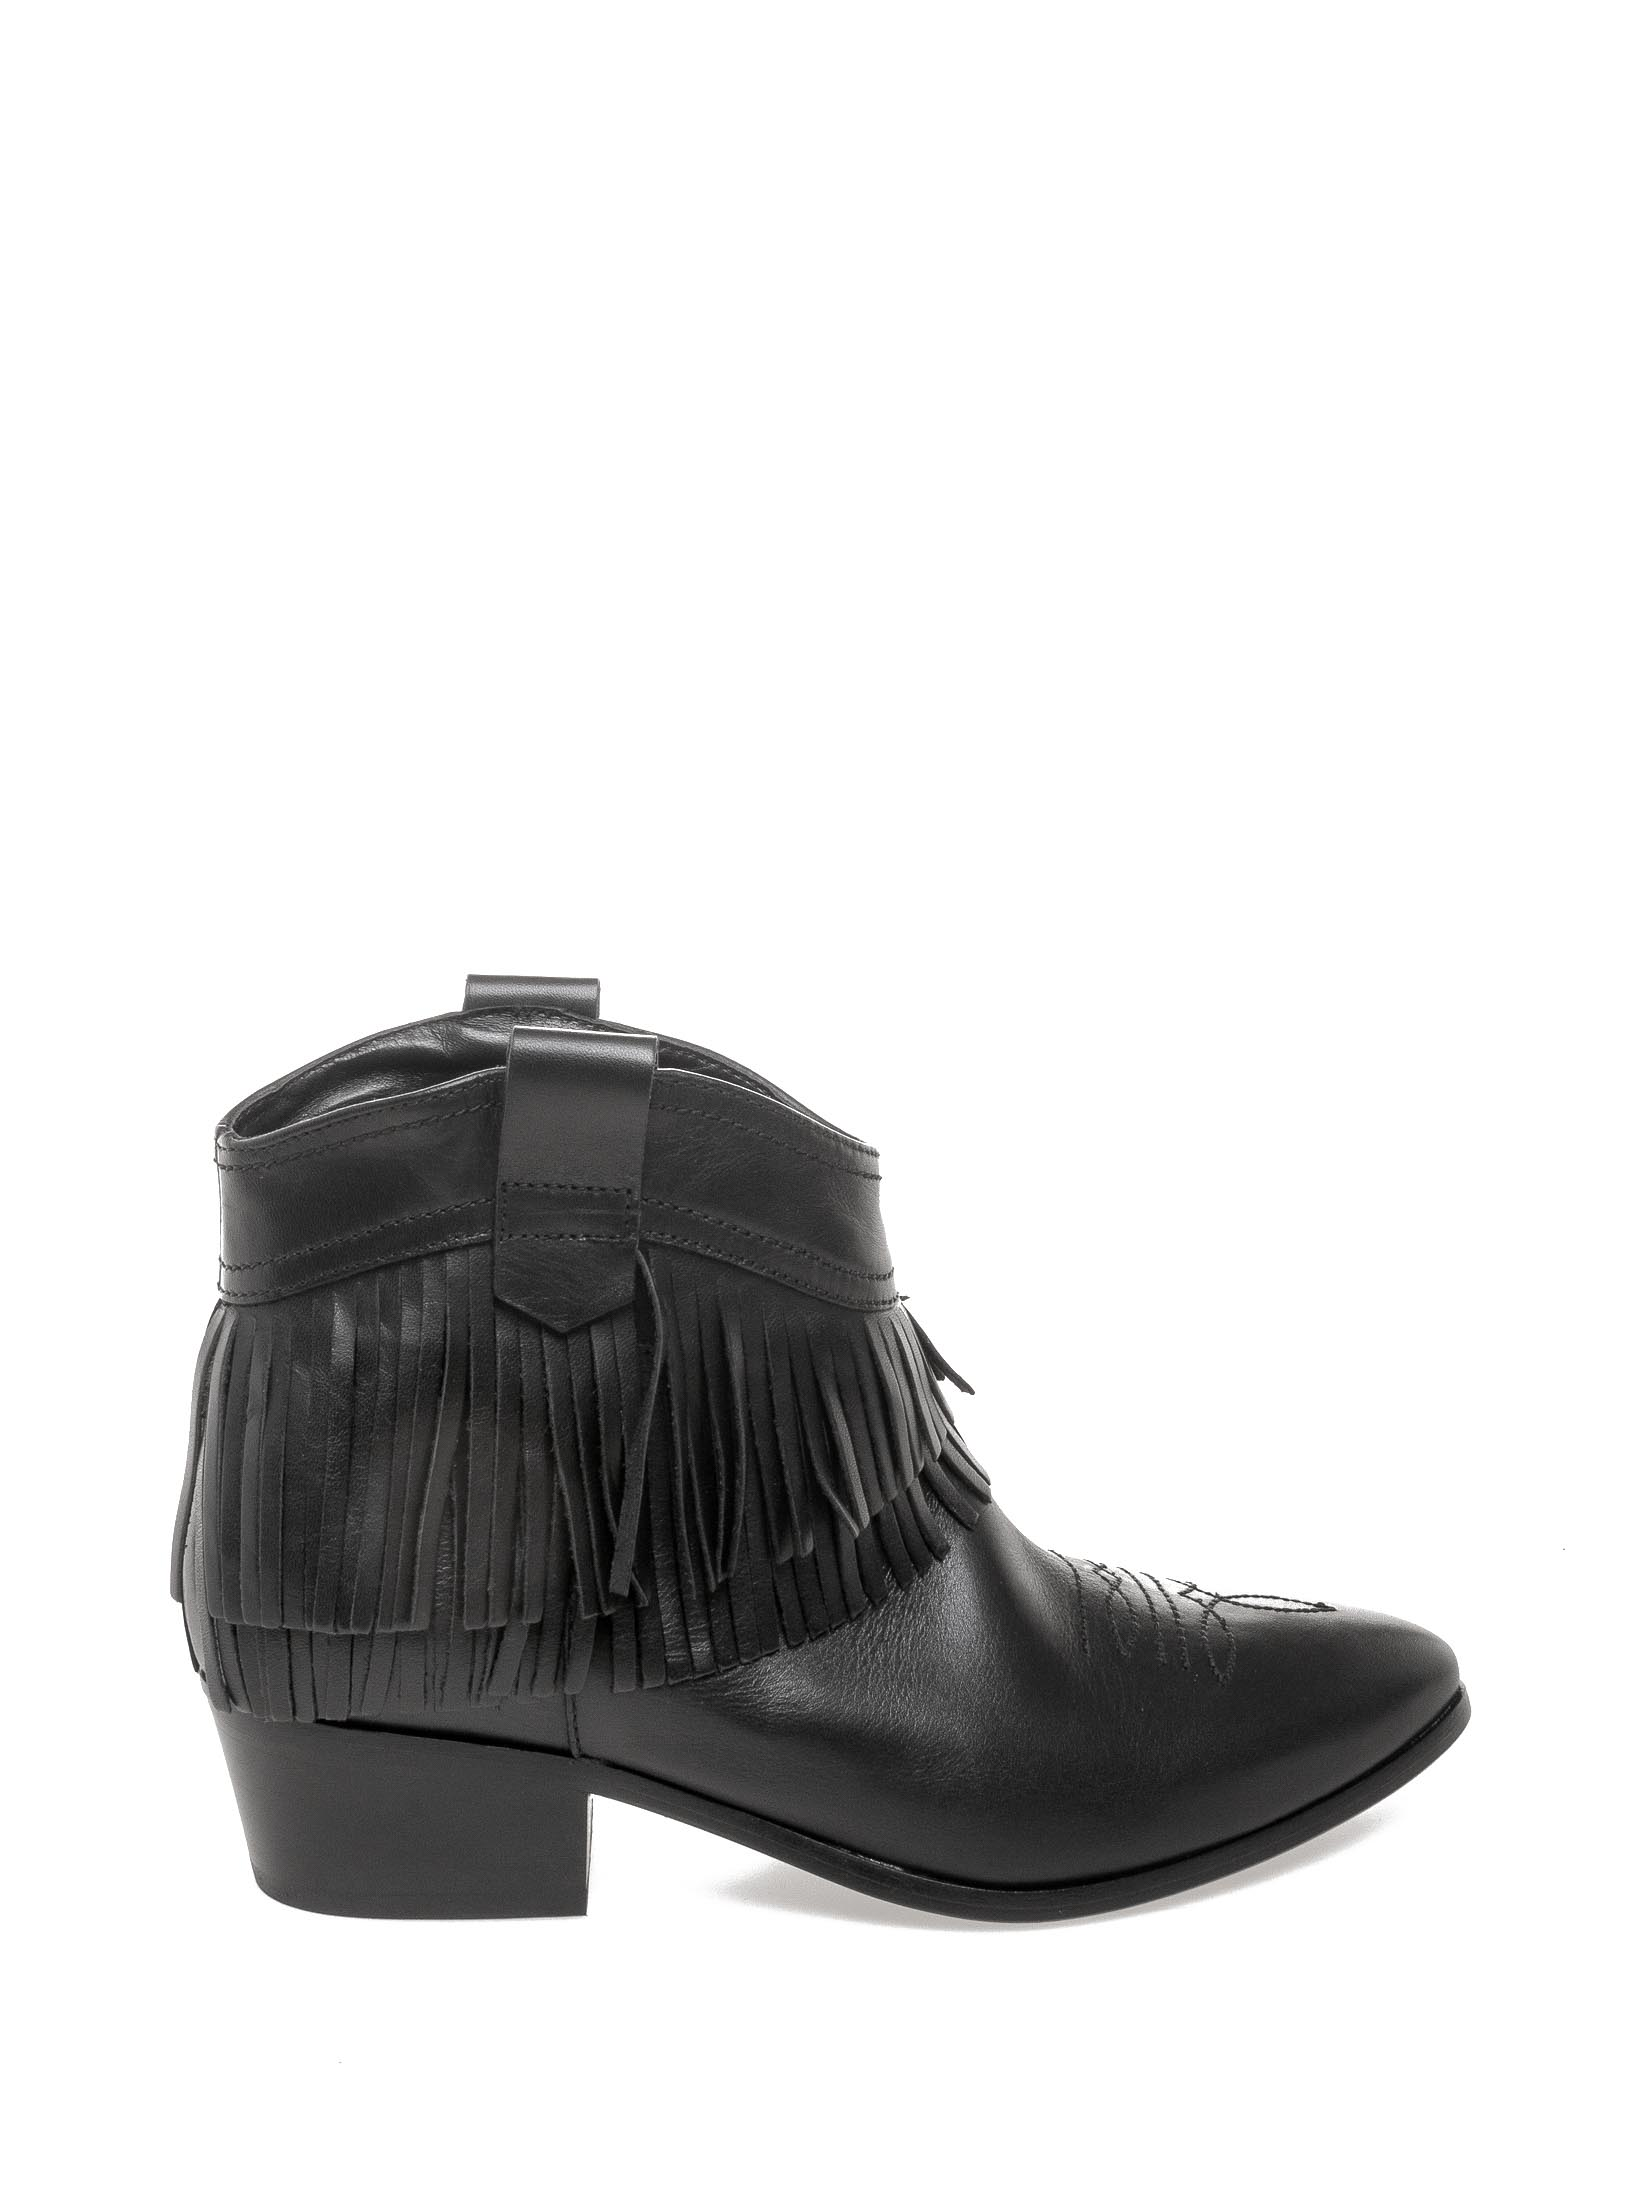 Ankle Boots | Pier One Ankle boots nero Women